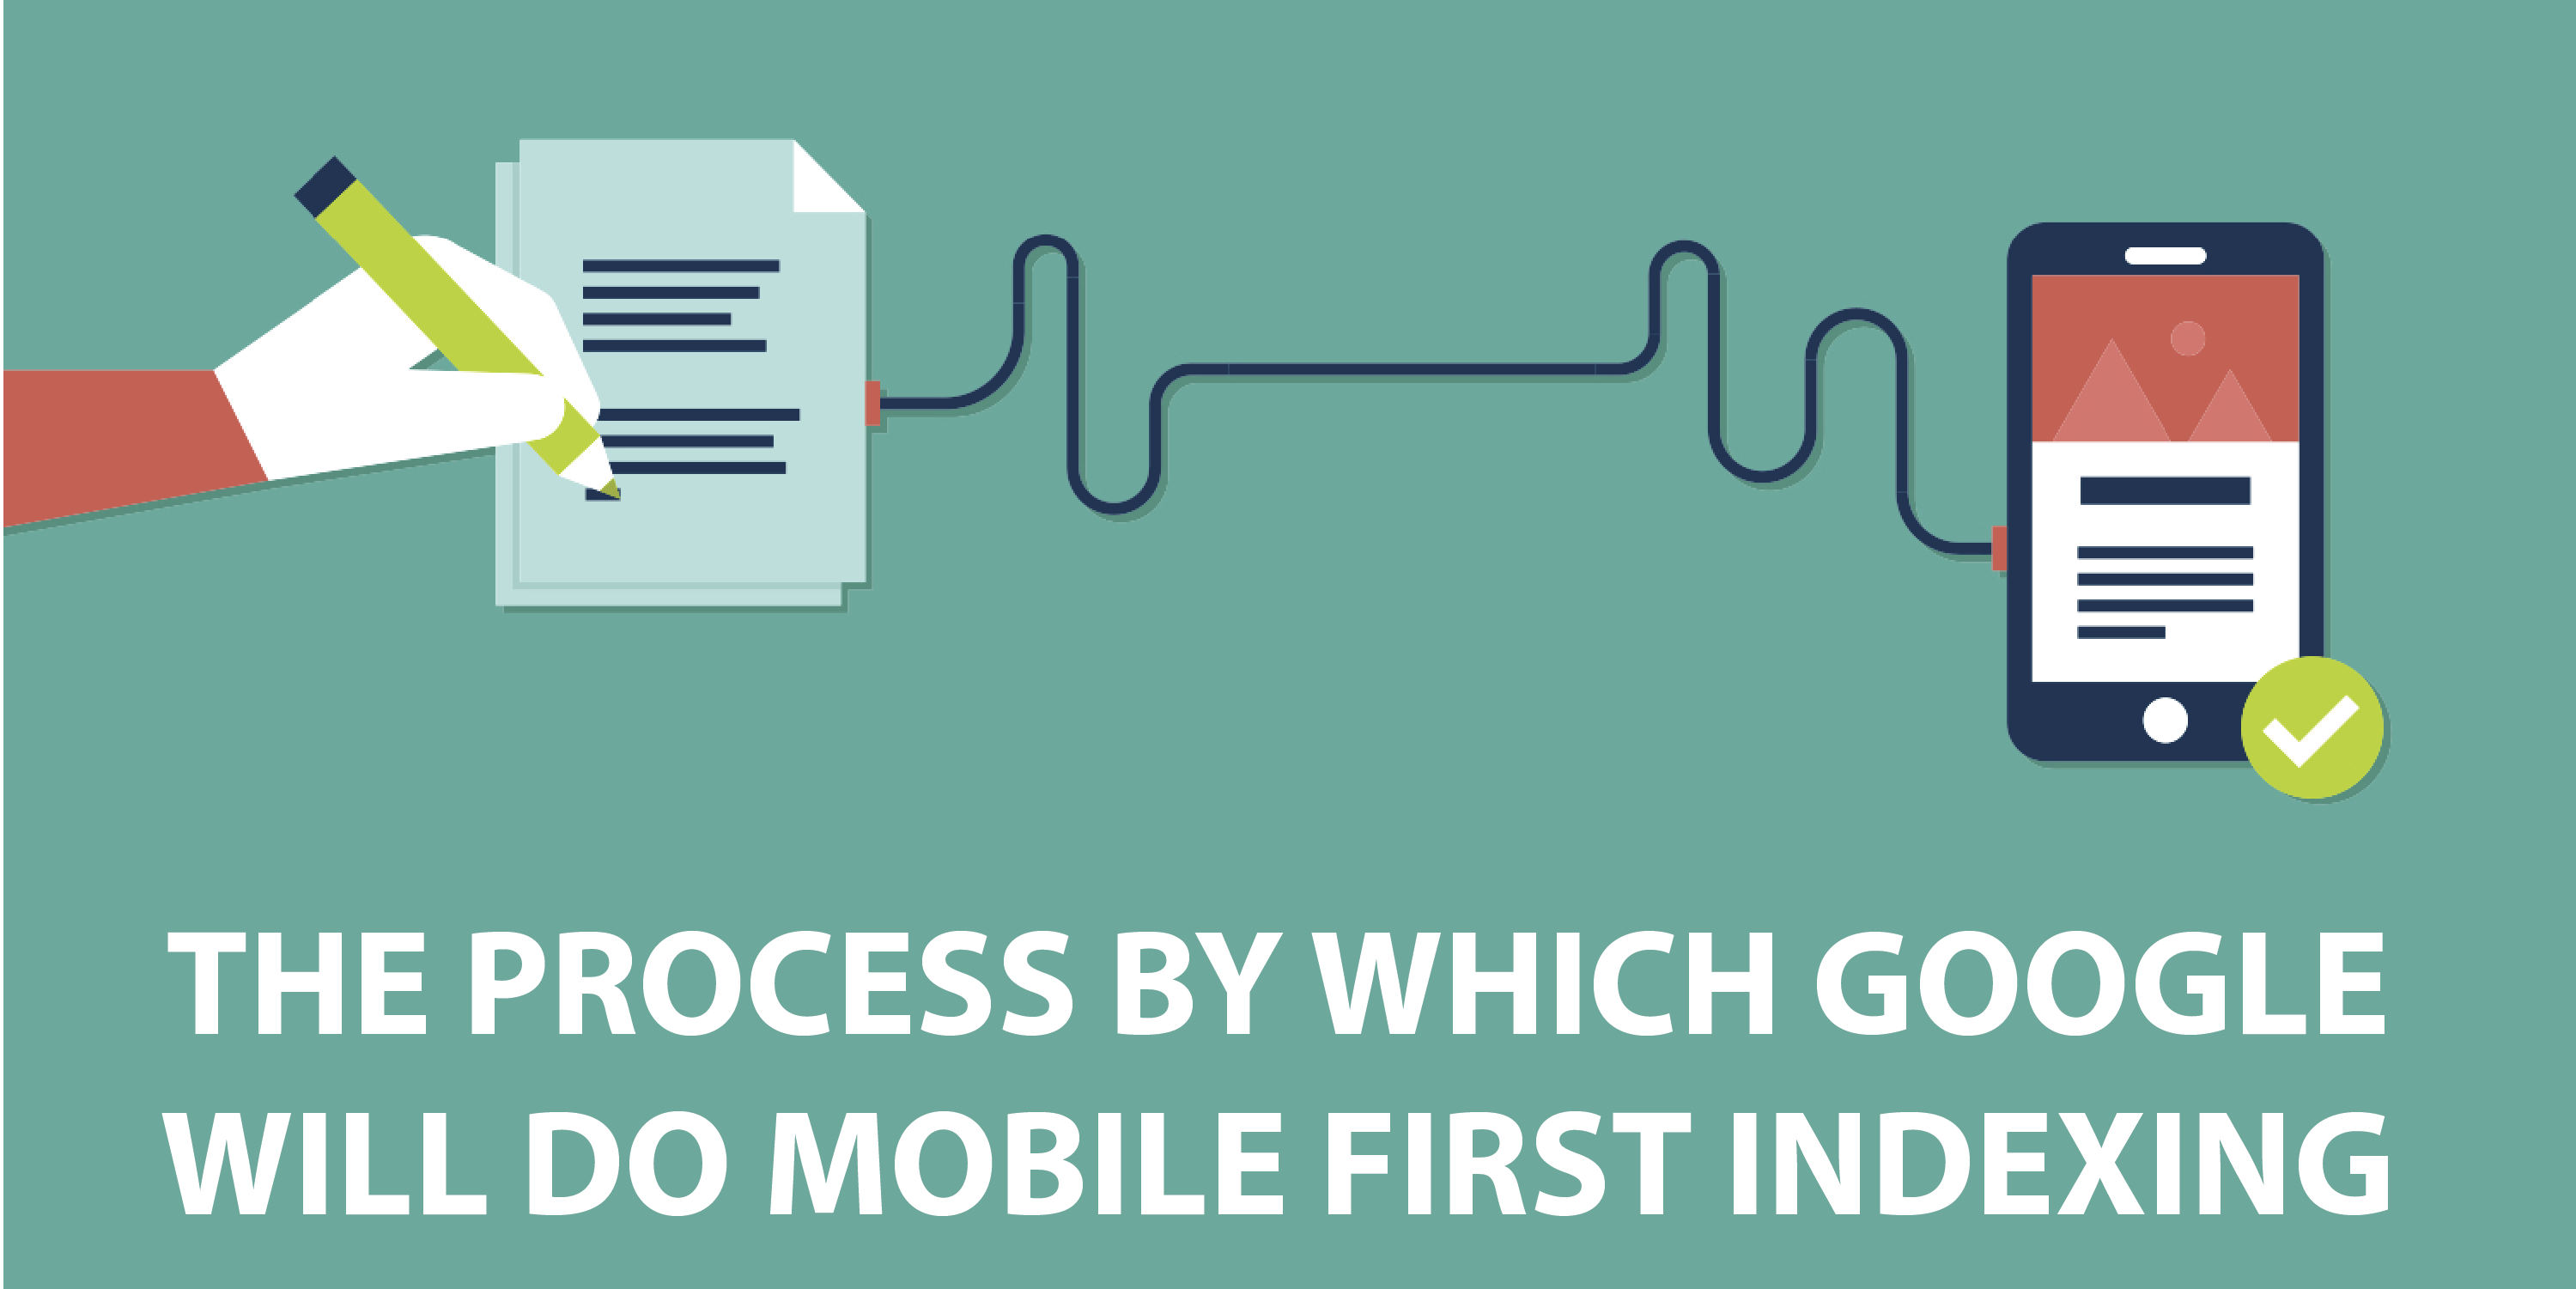 THE PROCESS BY WHICH GOOGLE WILL DO MOBILE FIRST INDEXING